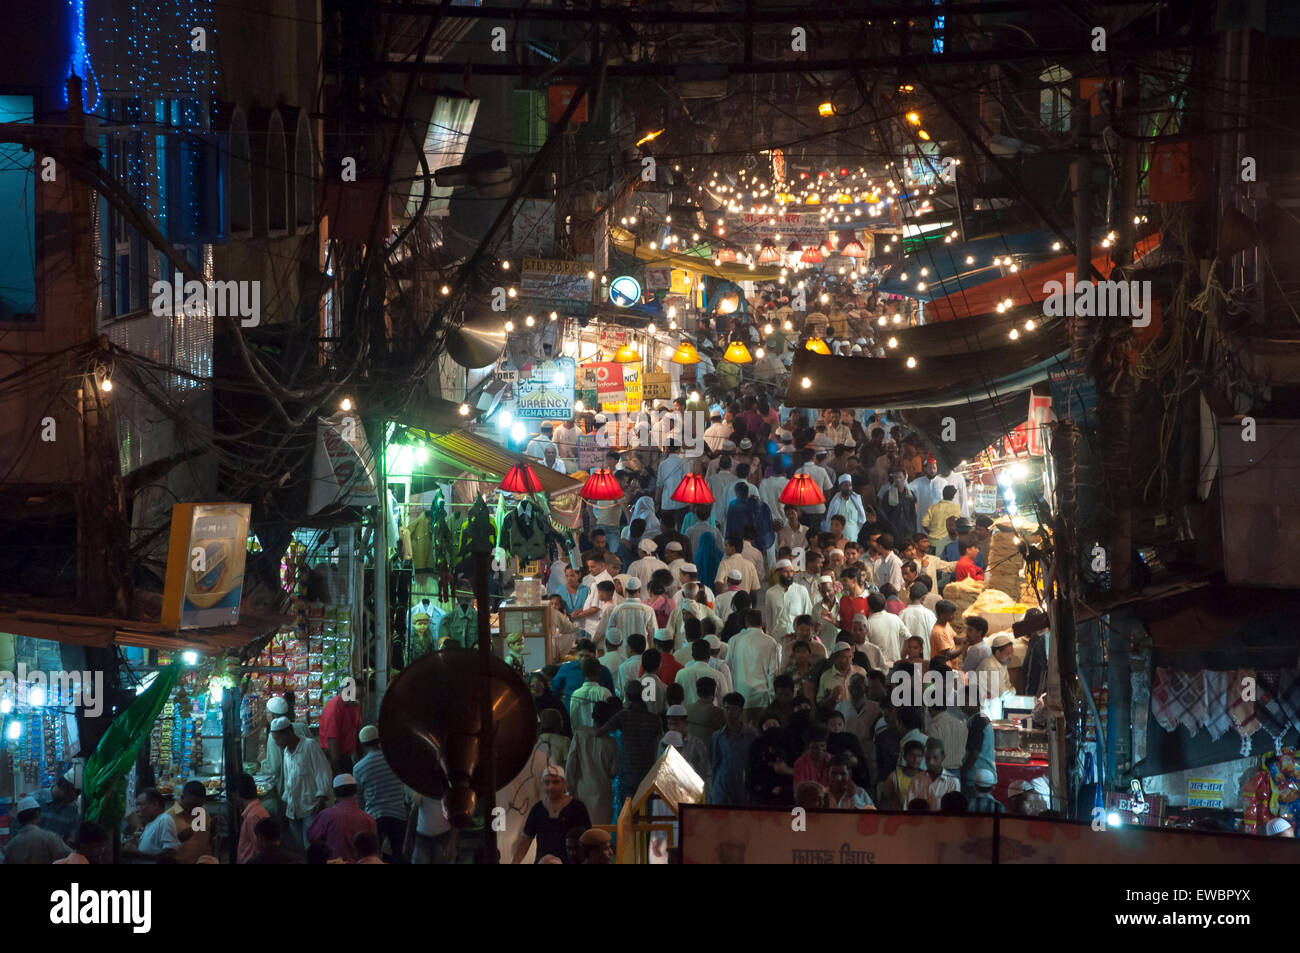 Chandni Chowk at night during Ramadan. Old Delhi, India. Stock Photo